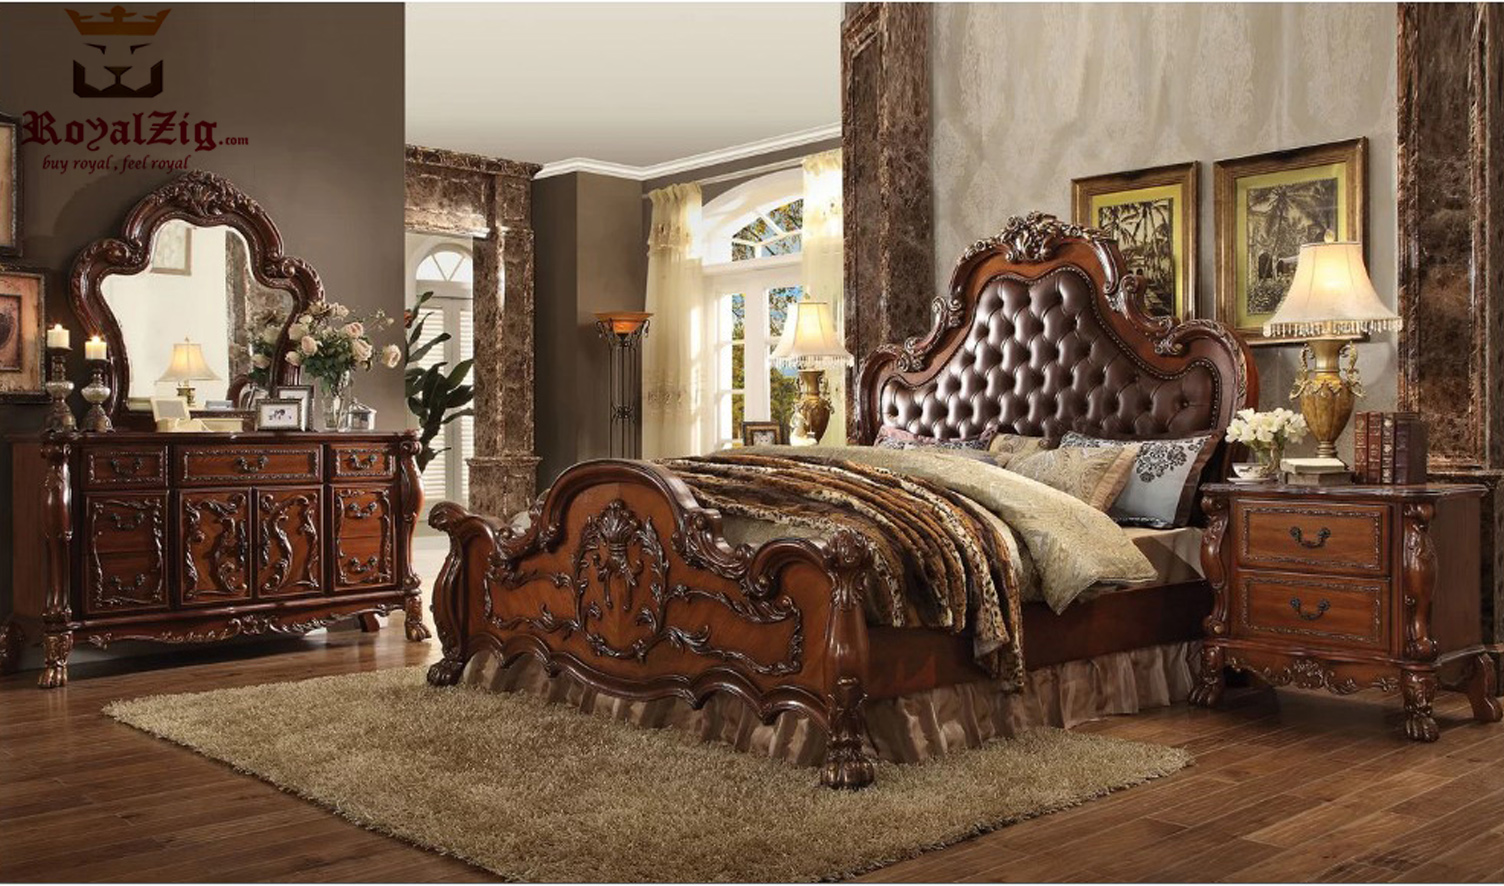 Antique Furniture: All you need to know